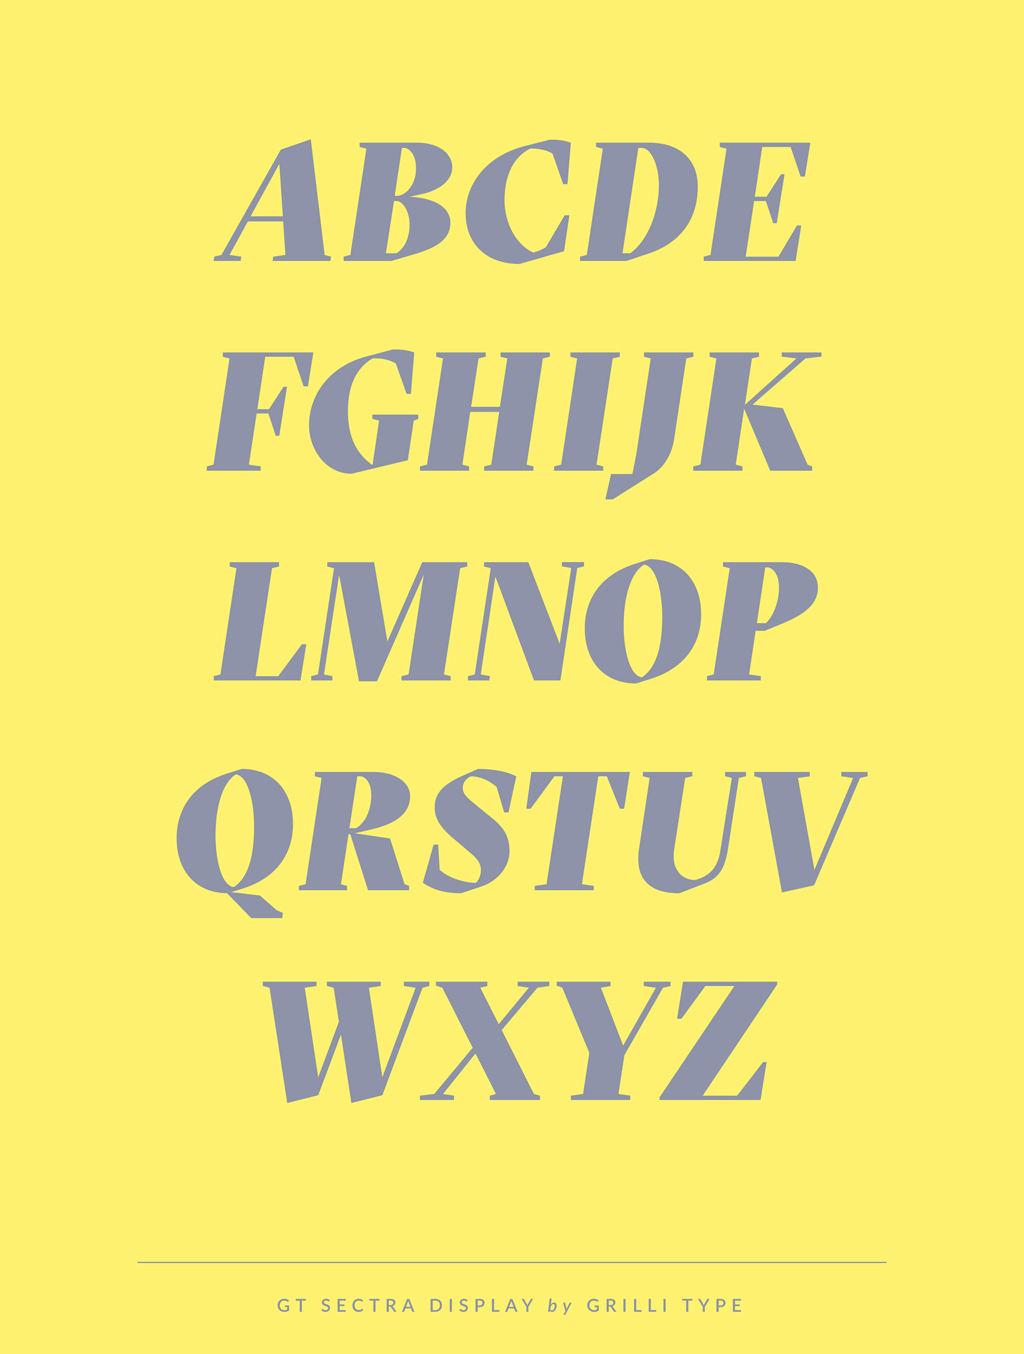 GT Sectra by Grilli Type | Sarah Le Donne Blog – Typefaces